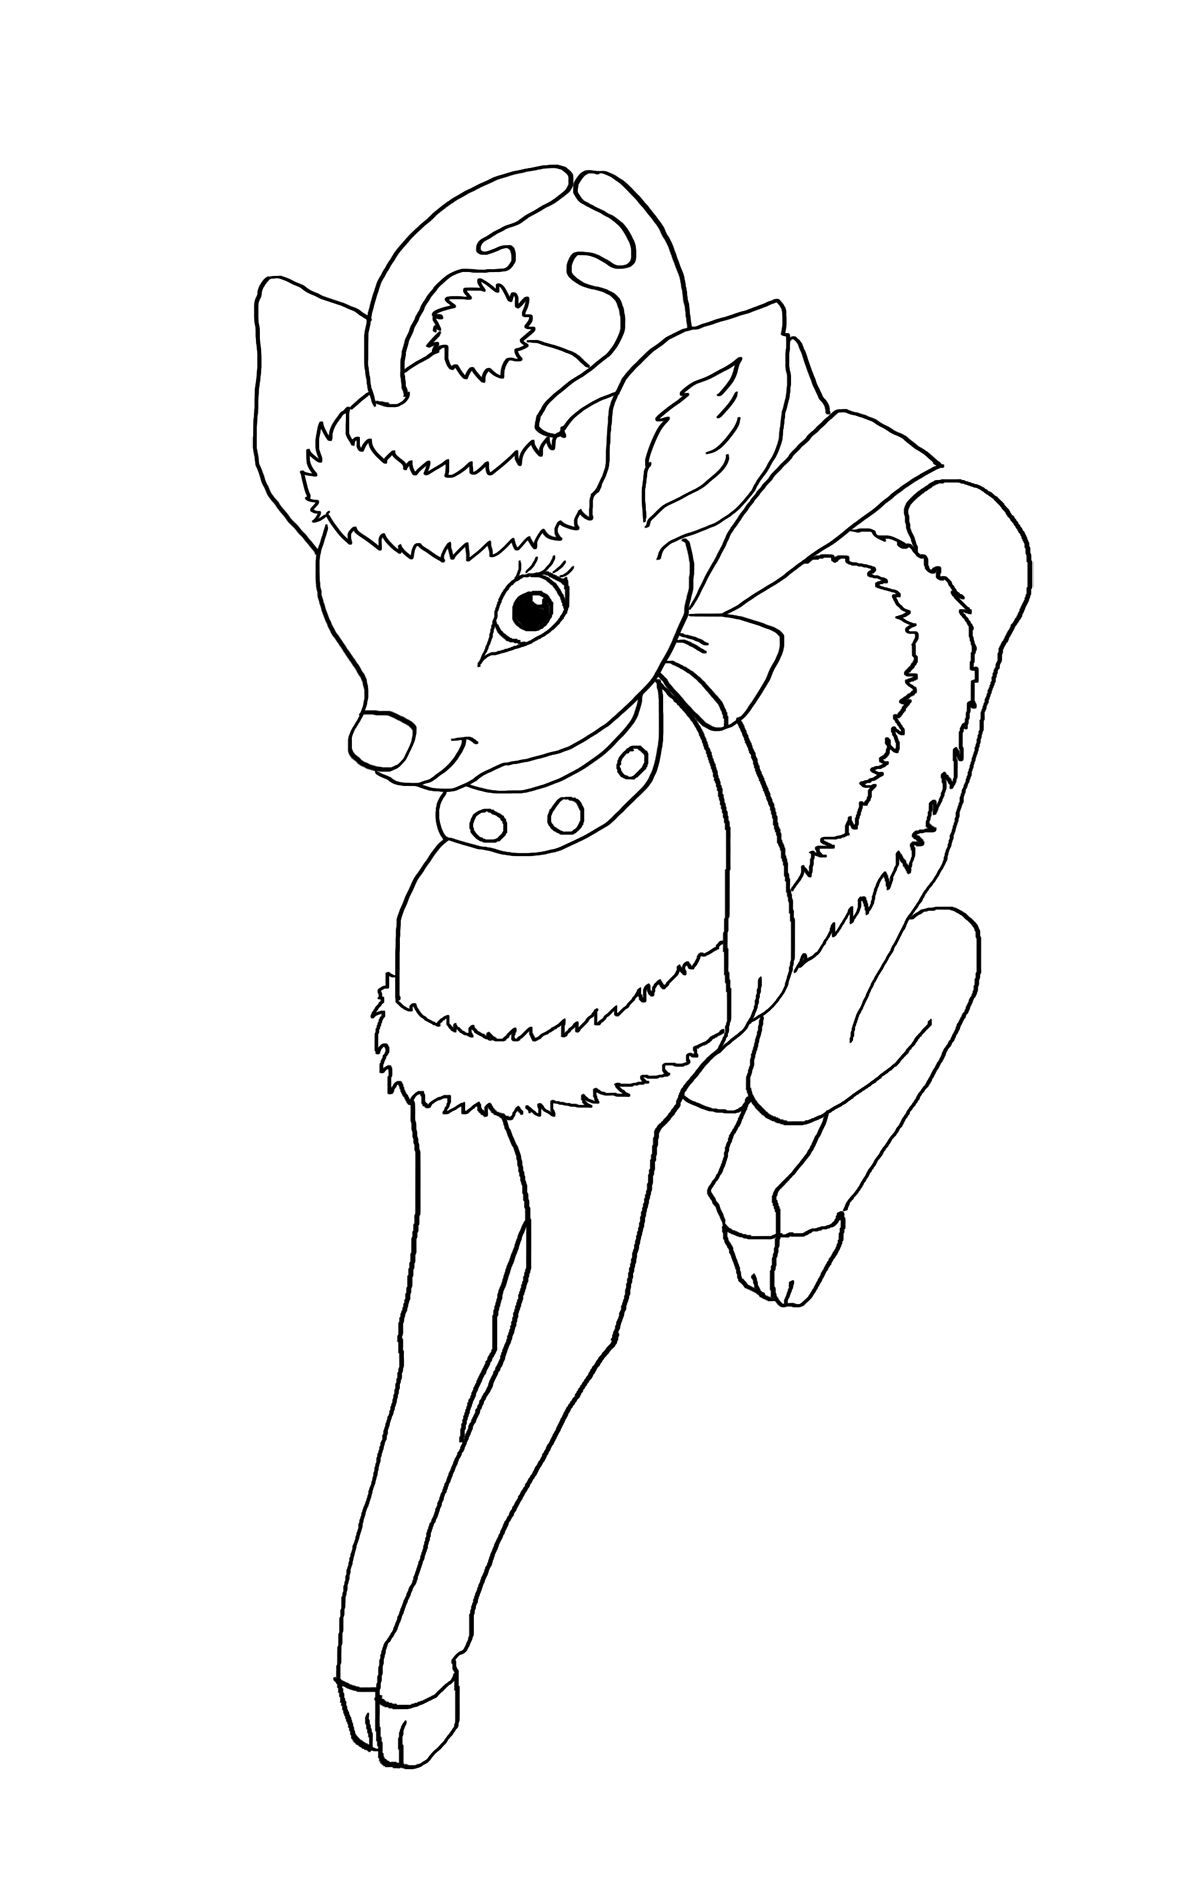 Wonderful Coloring Sheet With A Drawing Of A Cute Reindeer Dressed For Christmas In 2020 Christmas Coloring Pages Coloring Pages Christmas Colors